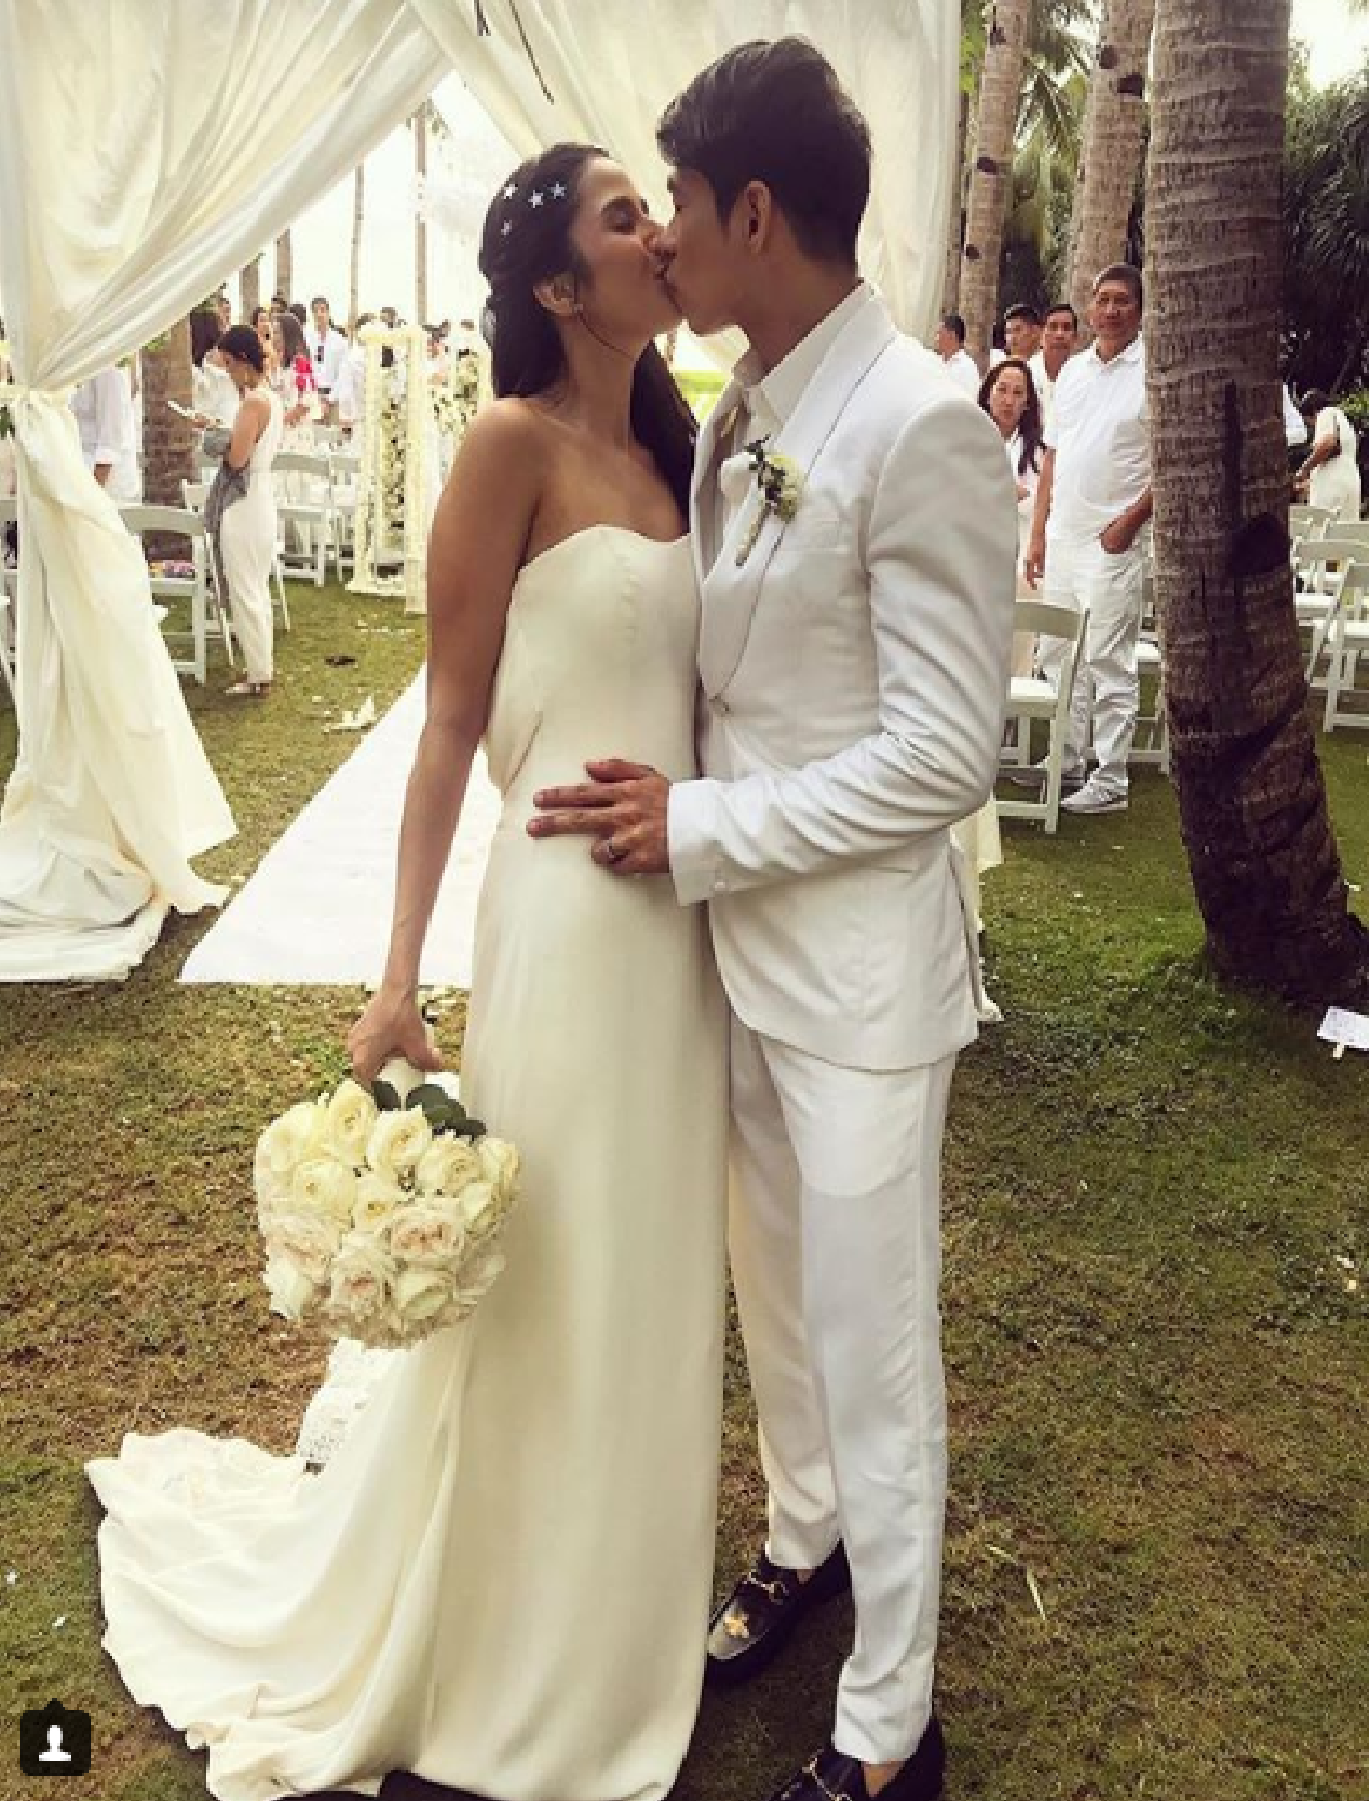 Actress Maxene Magalona tied the knot with model-musician Rob Mananquil in the one of the many picturesque island destinations in the country, Boracay Islands, on Thursday. (Photo: officialtimyap/Instagram)